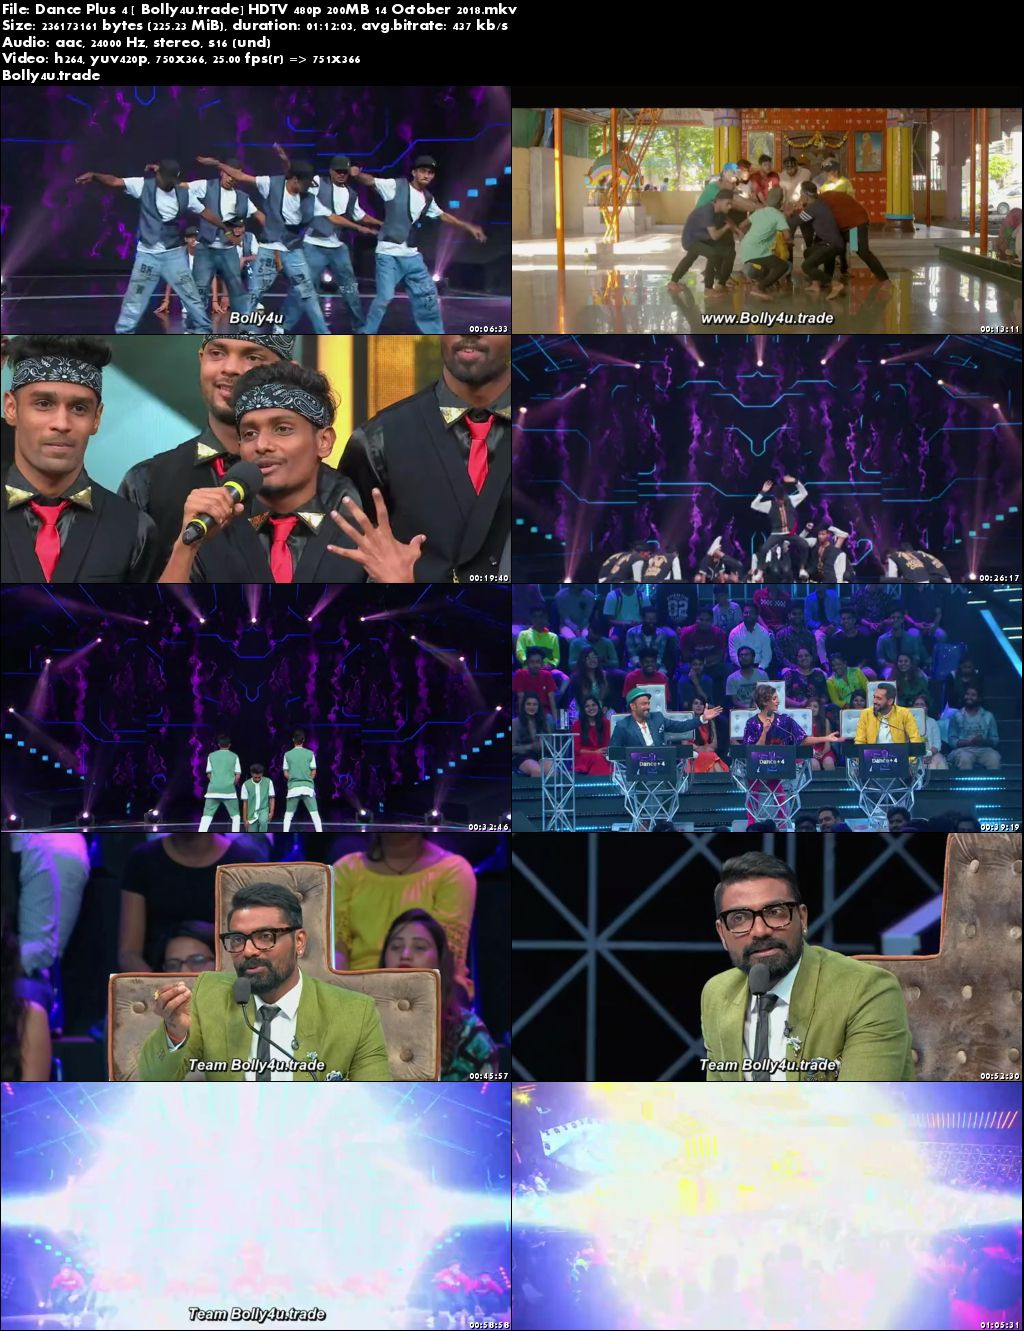 Dance Plus Season 4 HDTV 480p 200MB 480p 14 October 2018 Download